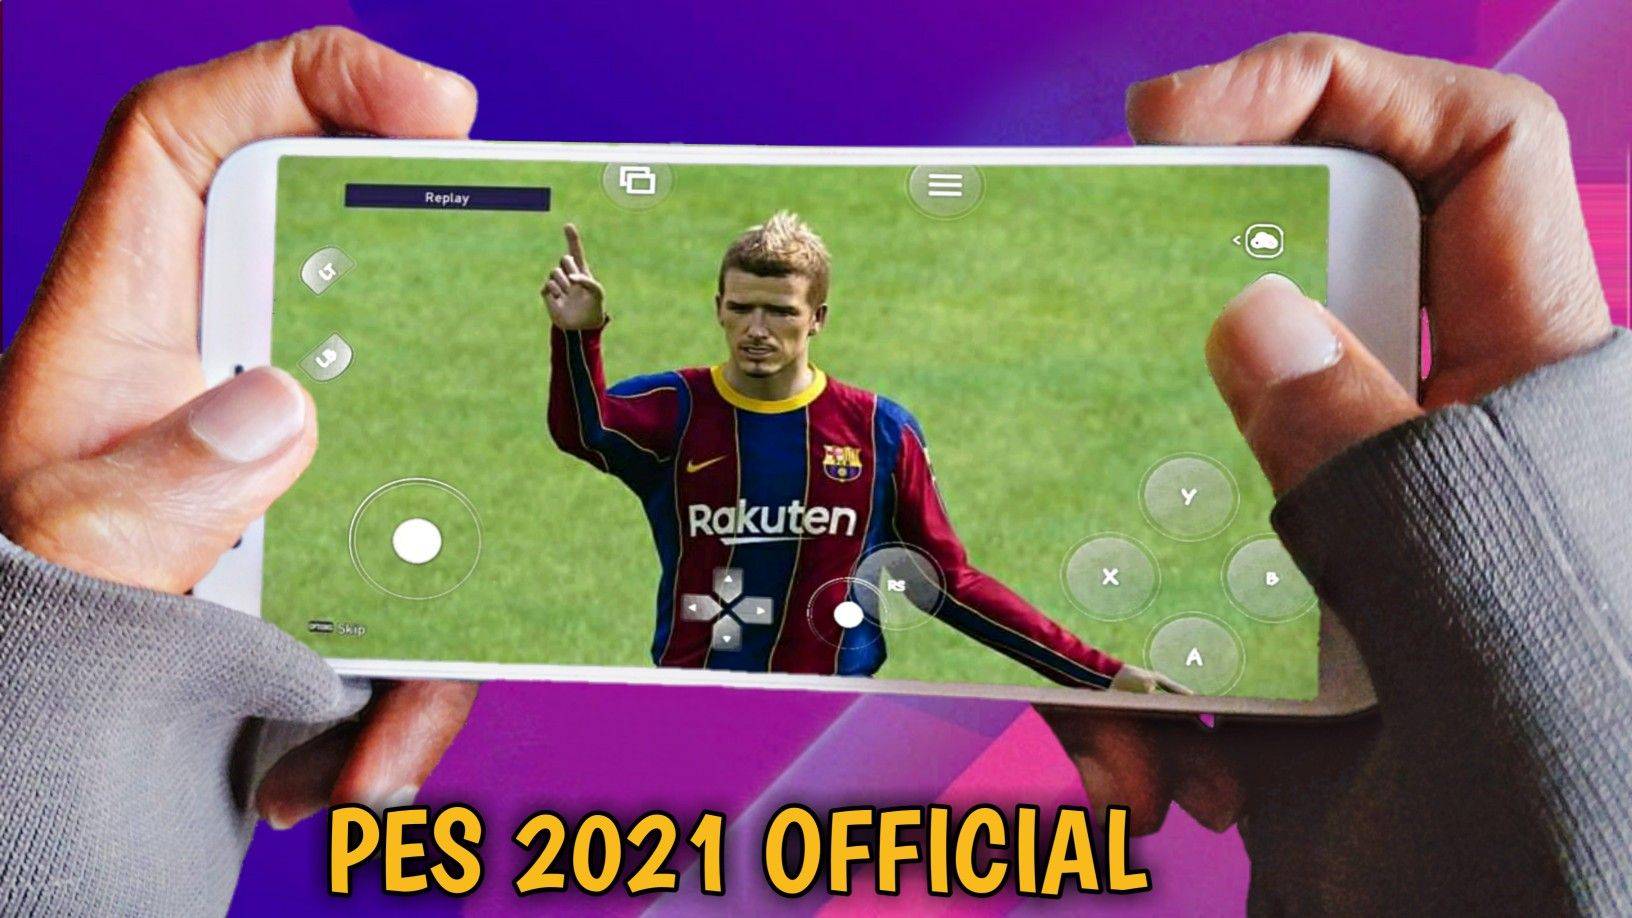 Download Pes 2021 Official Ps5 Mobile Play On Android Ios Offline Pro Evolution Soccer Pro Evolution Soccer Evolution Soccer Soccer